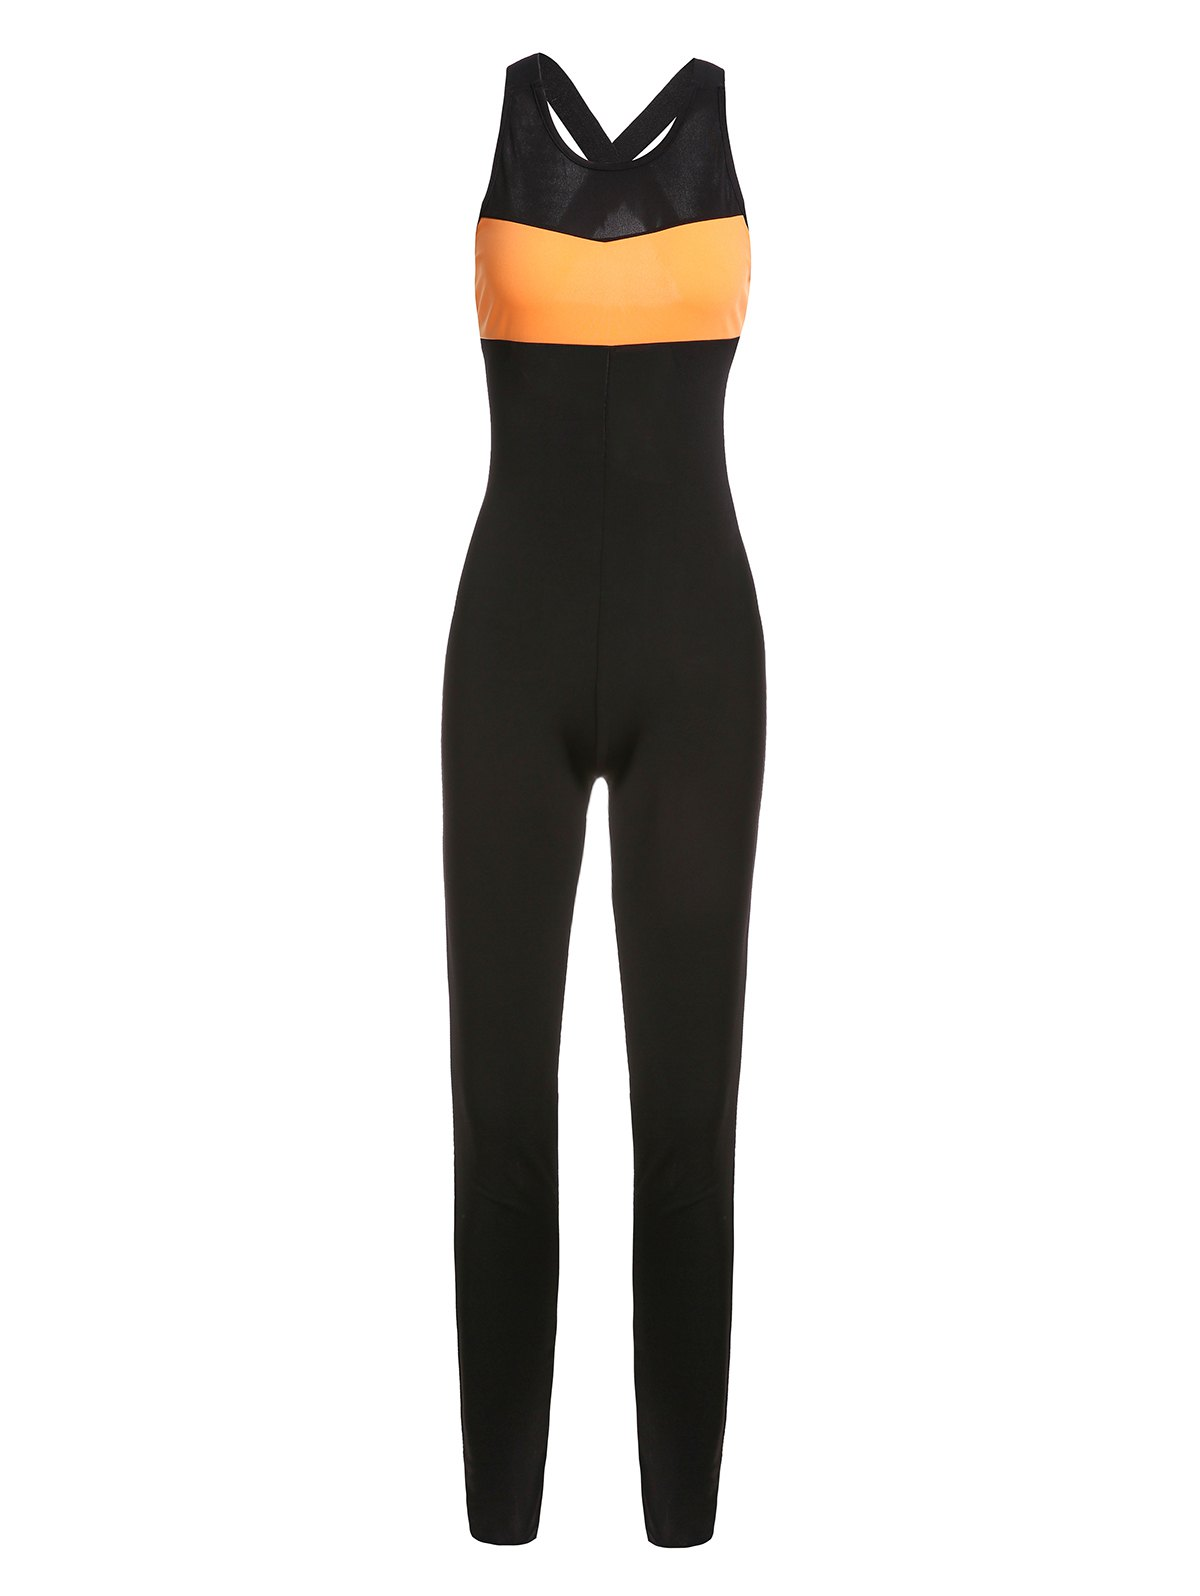 Chic See-Through Hollow Out Sport Jumpsuit For Women - BLACK S